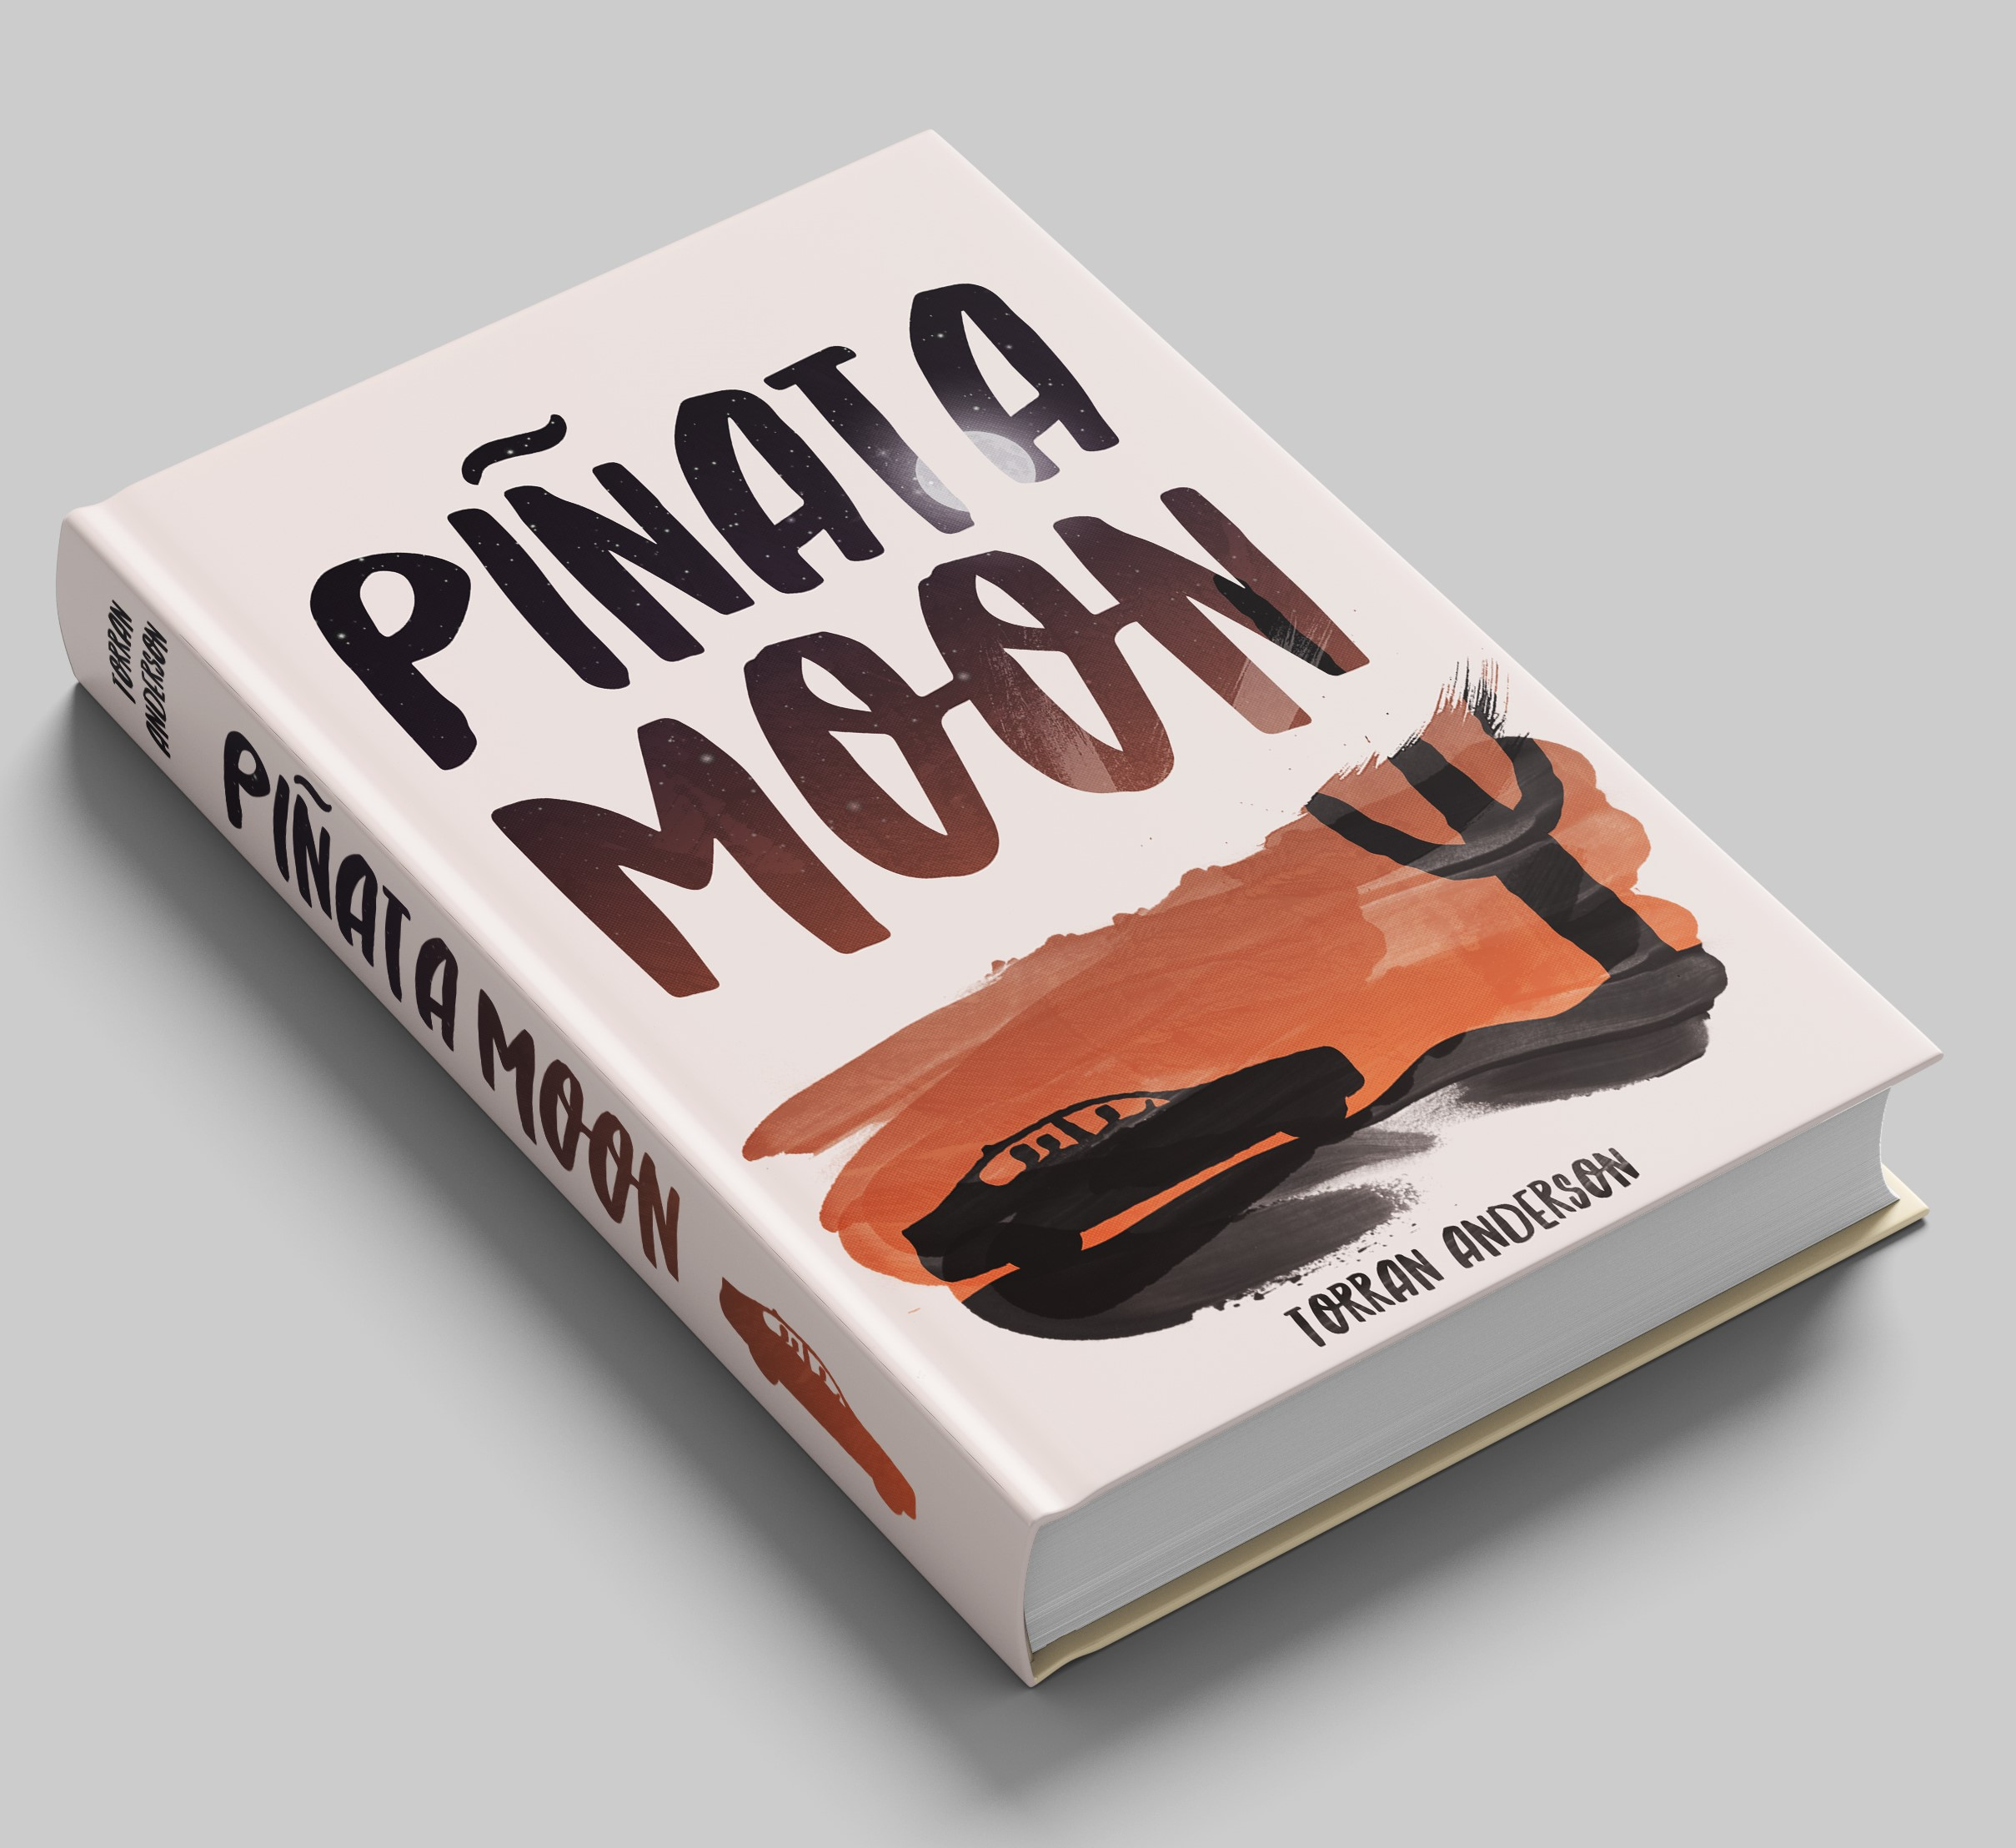 Piñata Moon Author:Torran Anderson Publisher Name:Look Out Behind You Books Date of Publication: May 2019